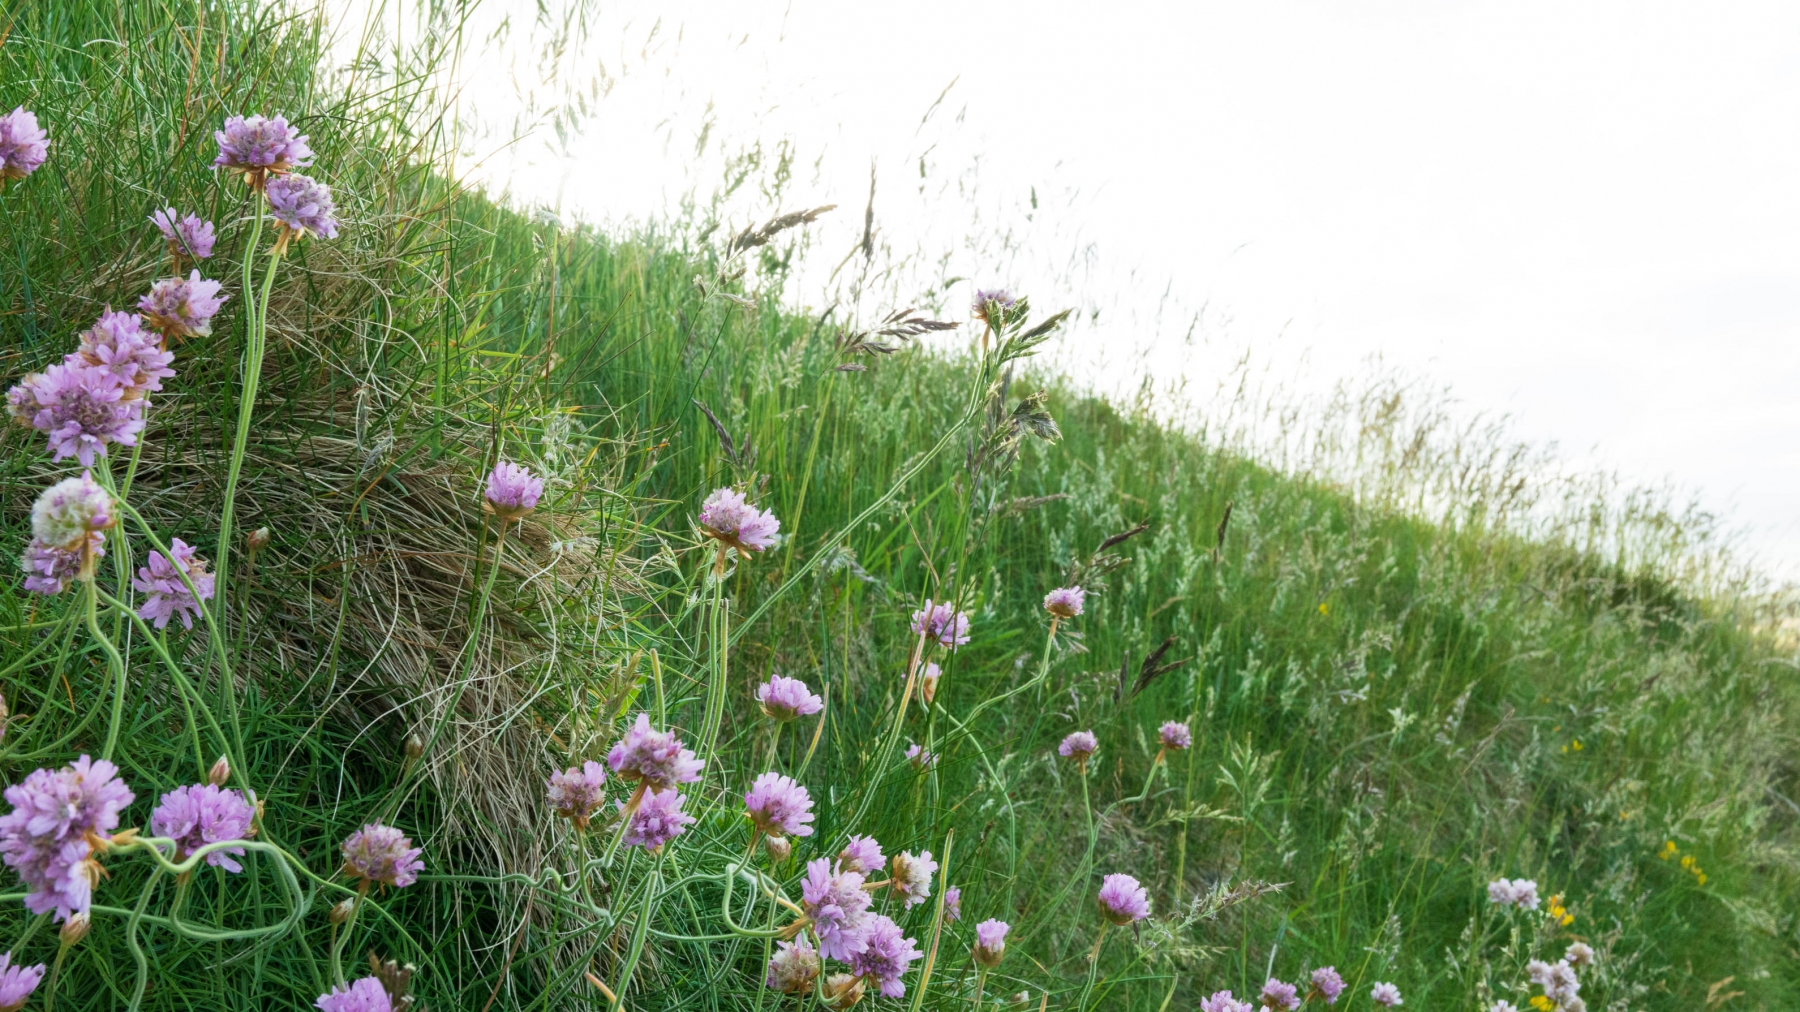 Wildflowers along the Cliff Walk.